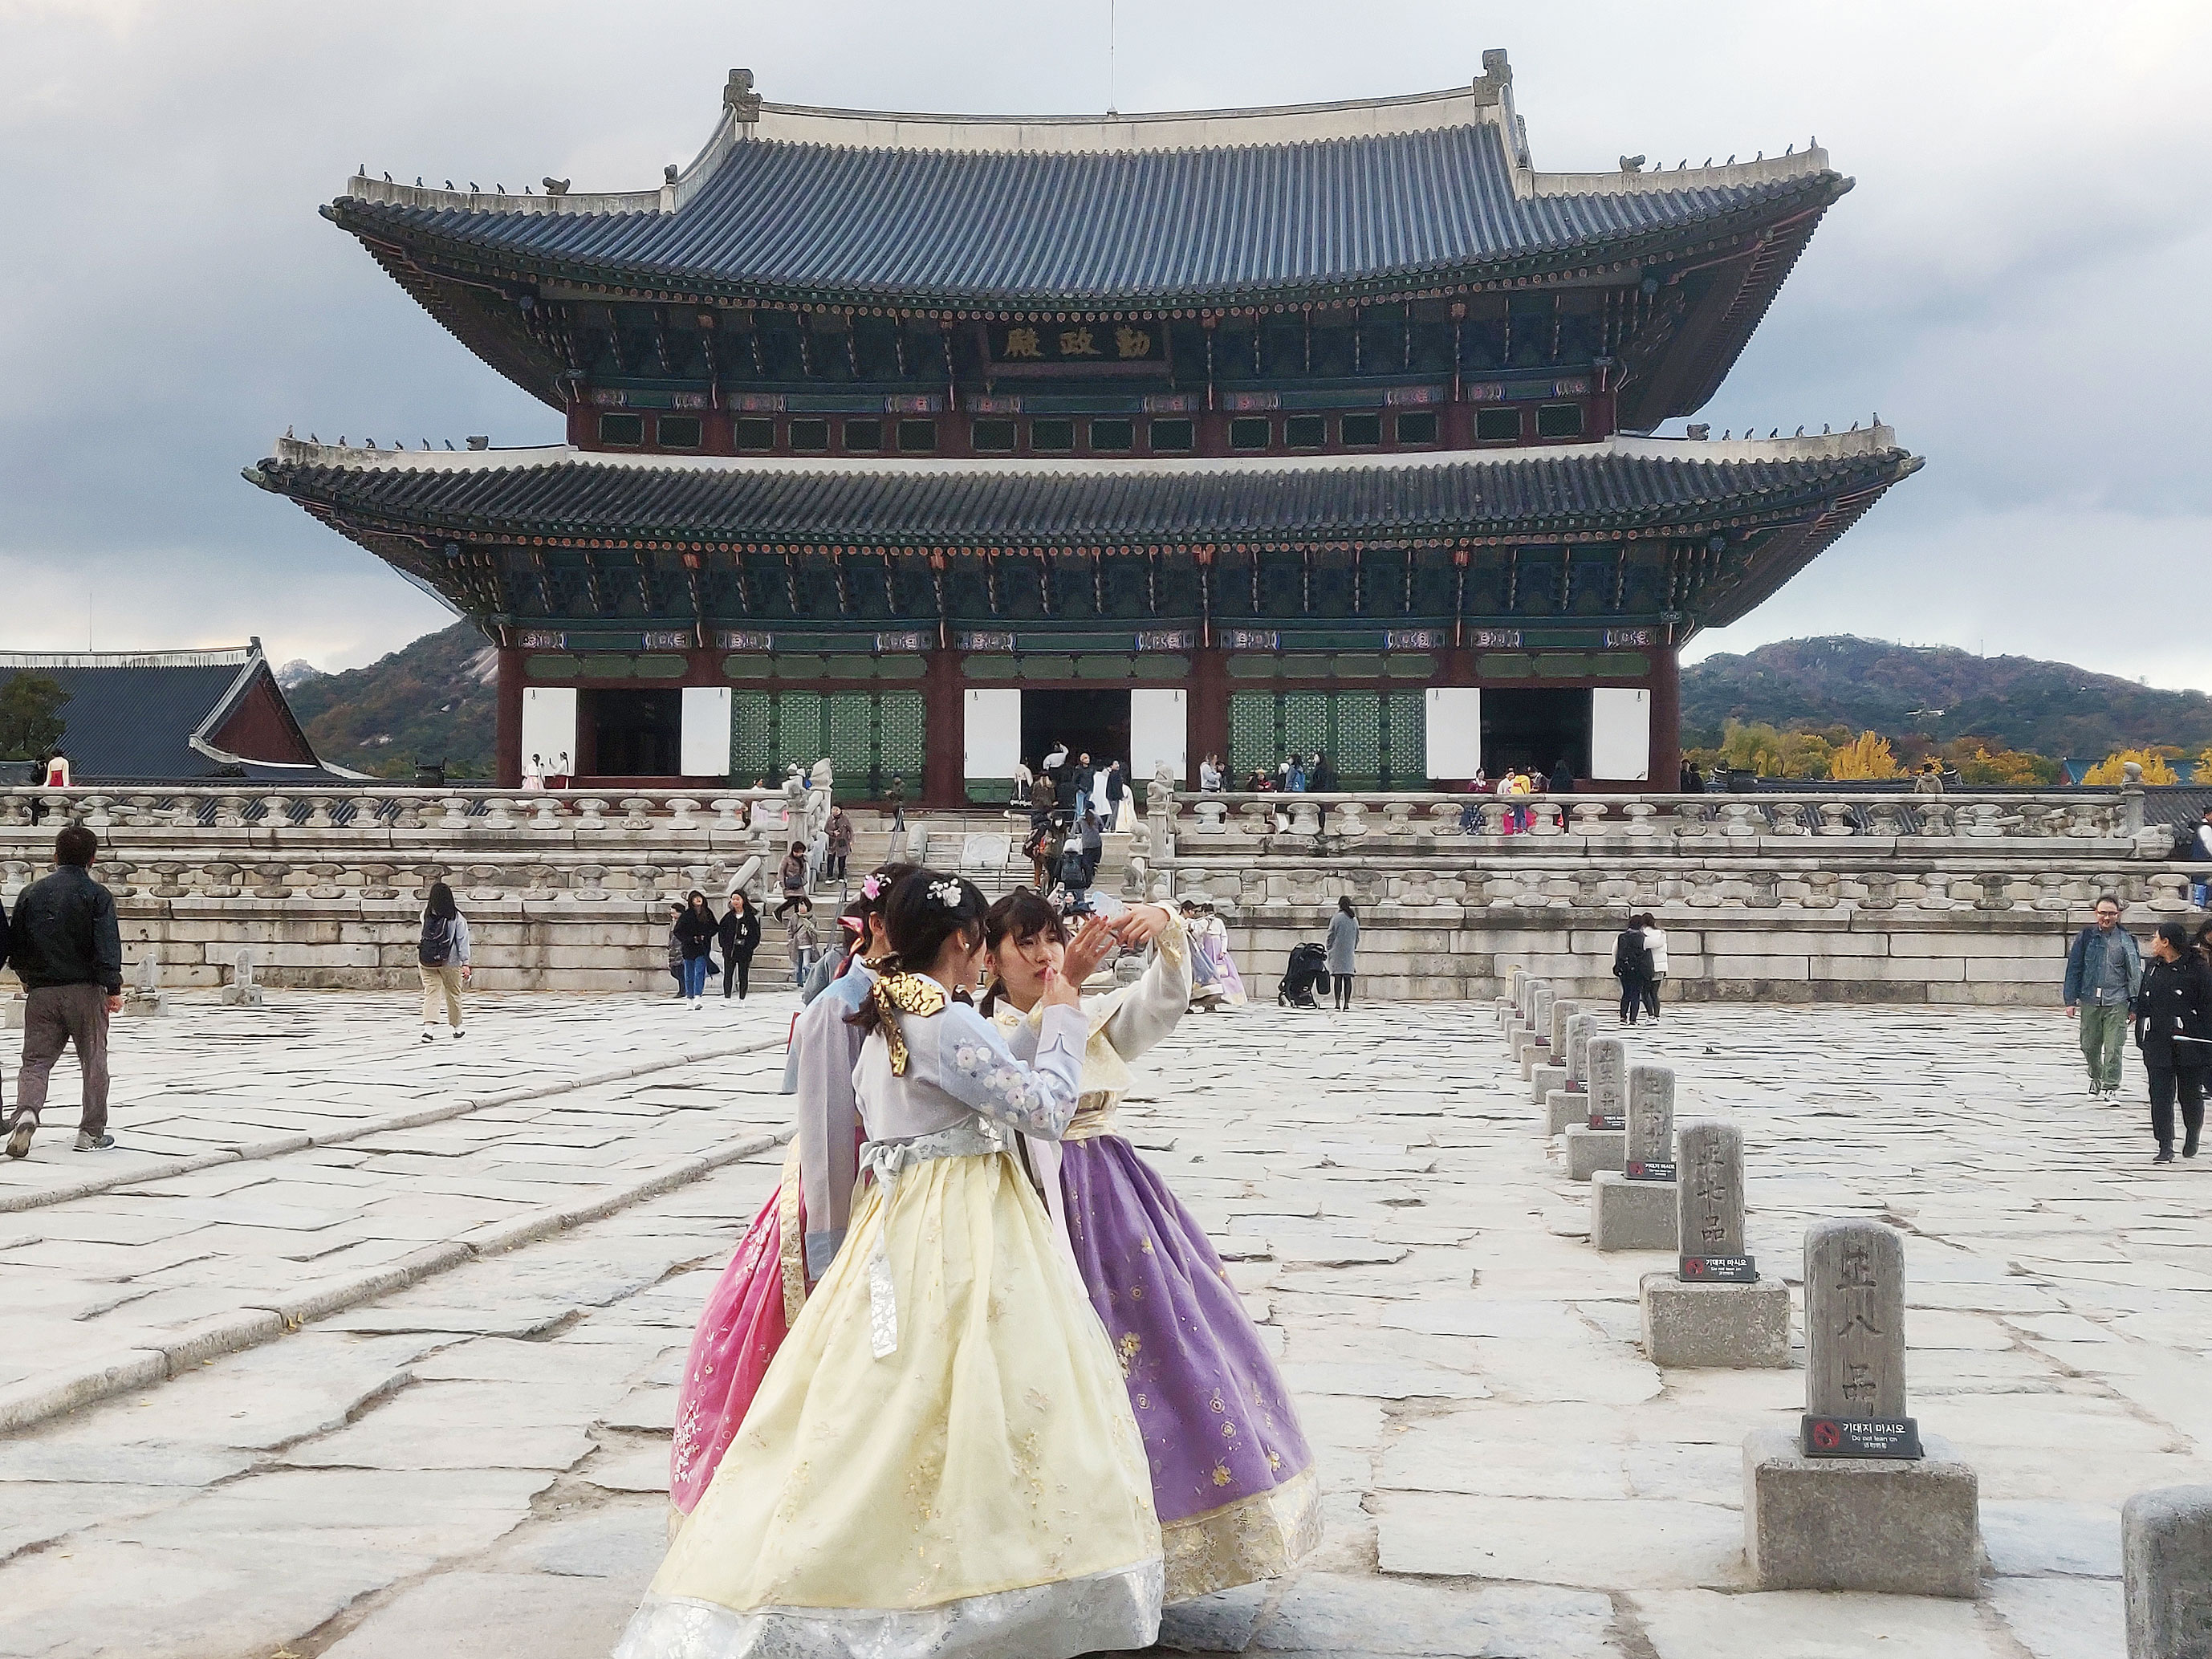 Three young girls, dressed in traditional Korean attire, take a selfie at Gyeongbokgung Palace in Seoul, a city known for tech innovations